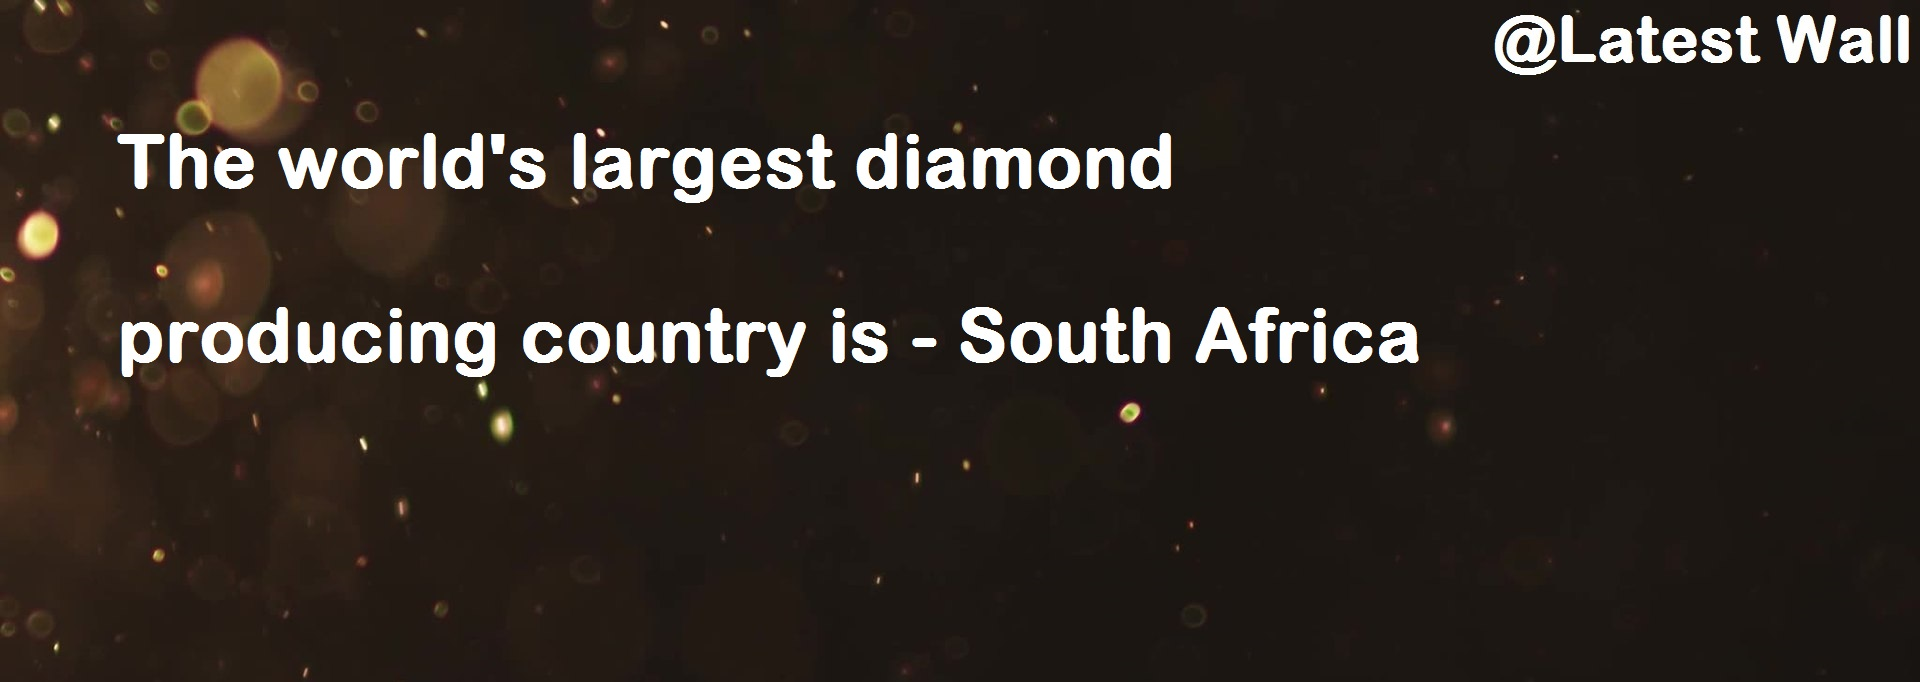 The world's largest diamond producing country is